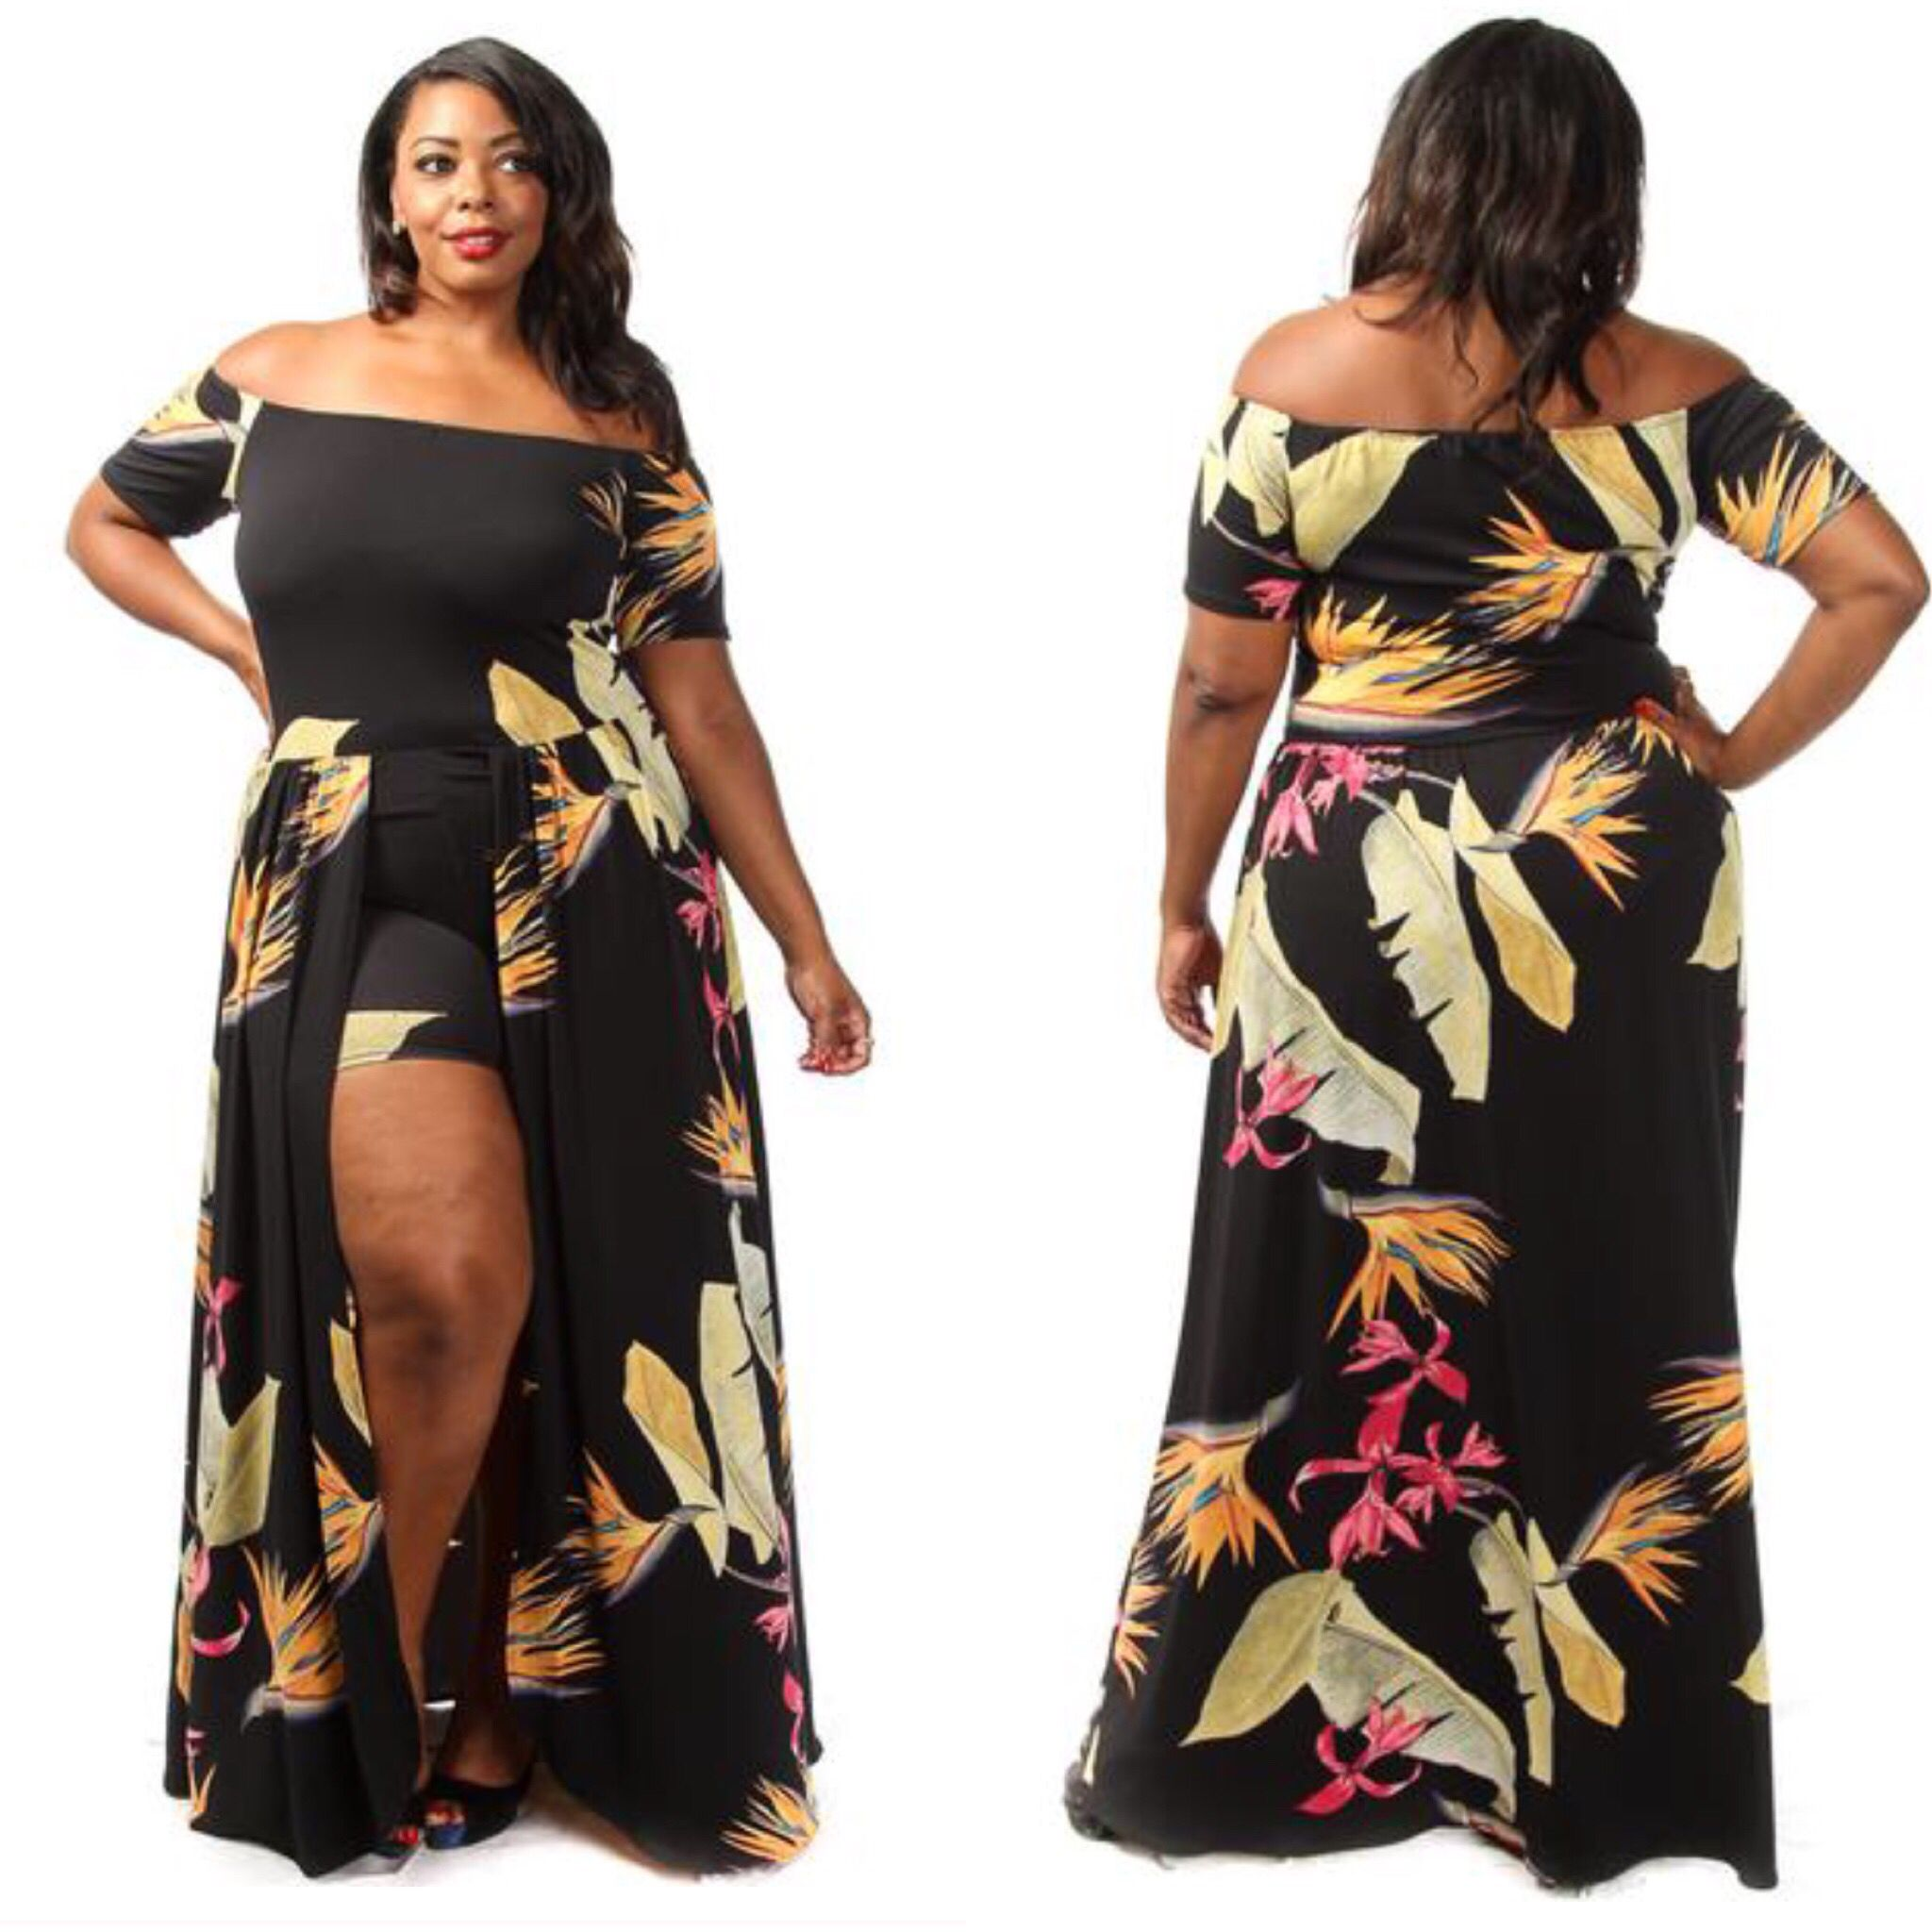 Hawaiian plus size maxi dress with shorts attached ...